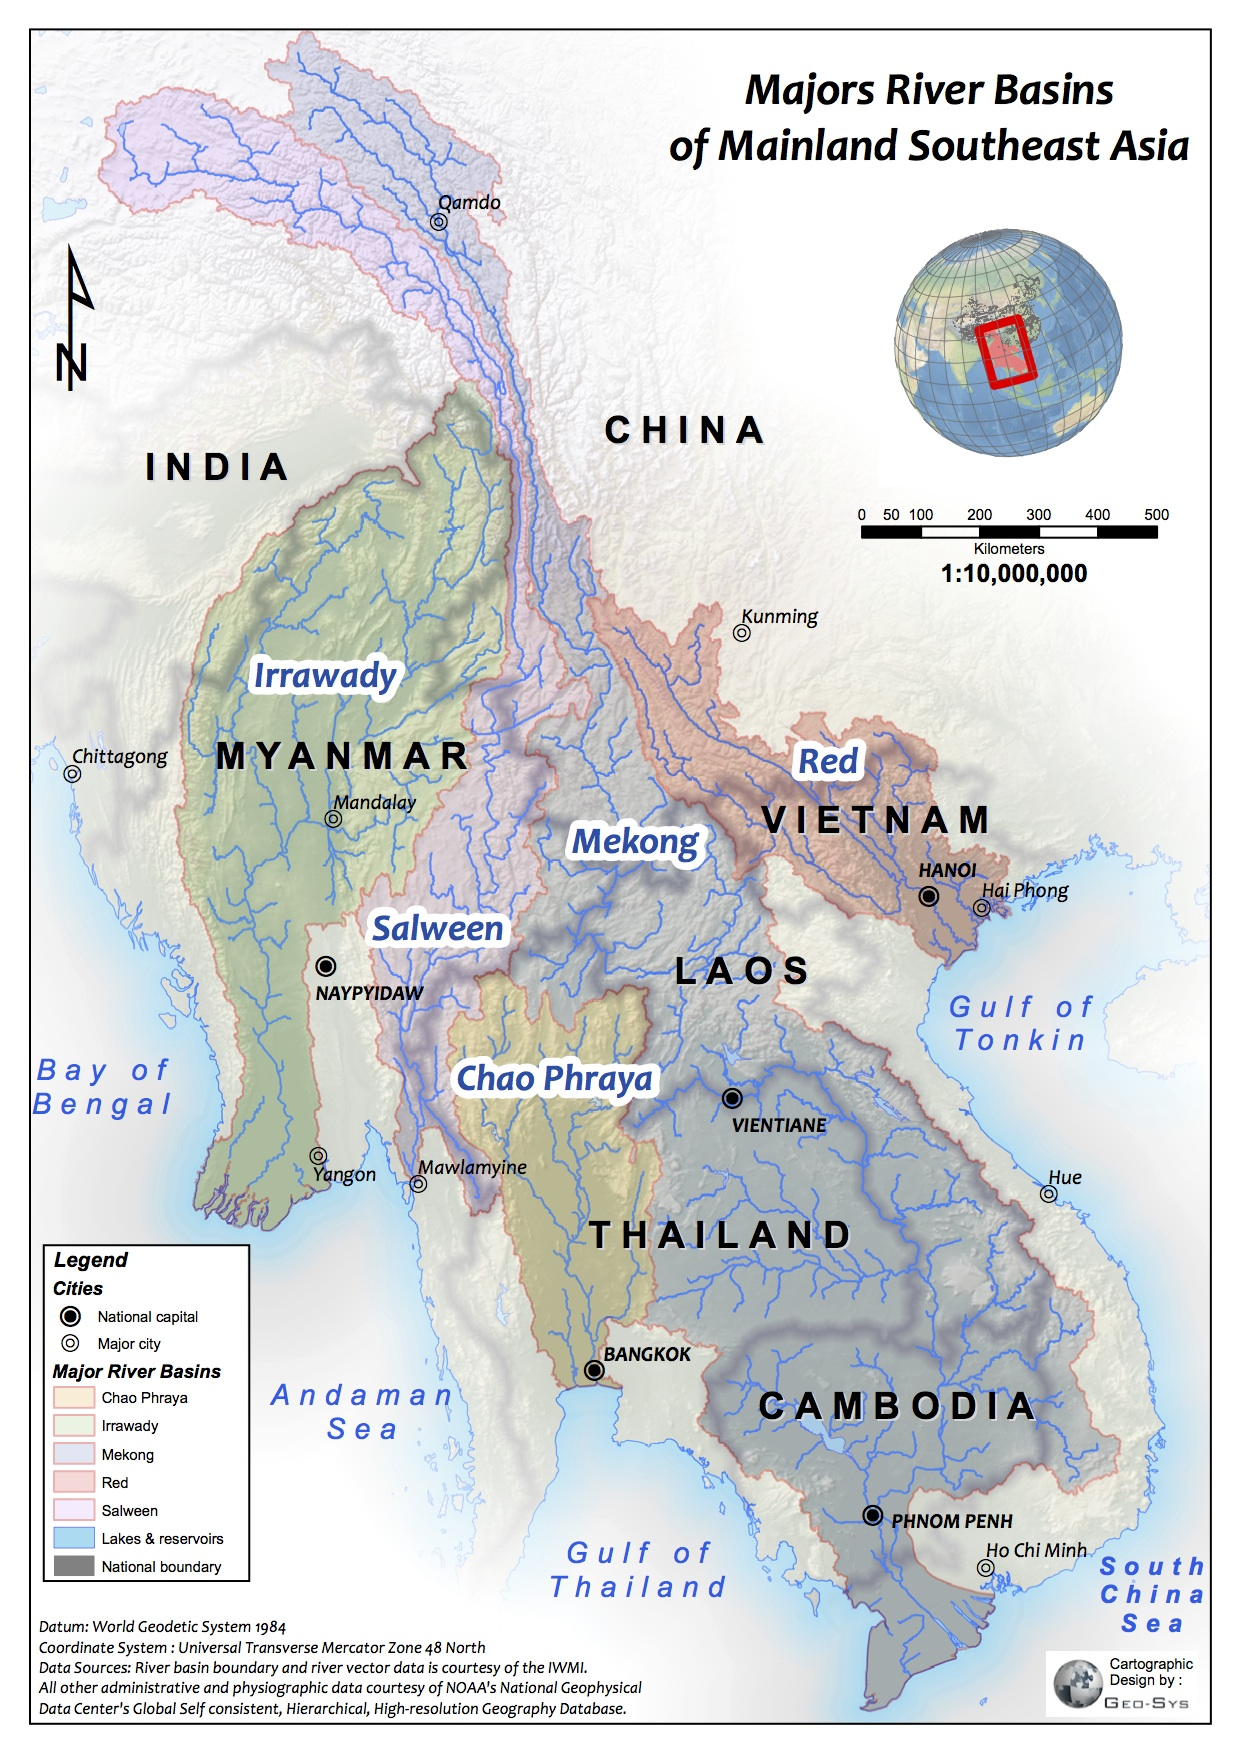 Major Southeast Asian River Basins